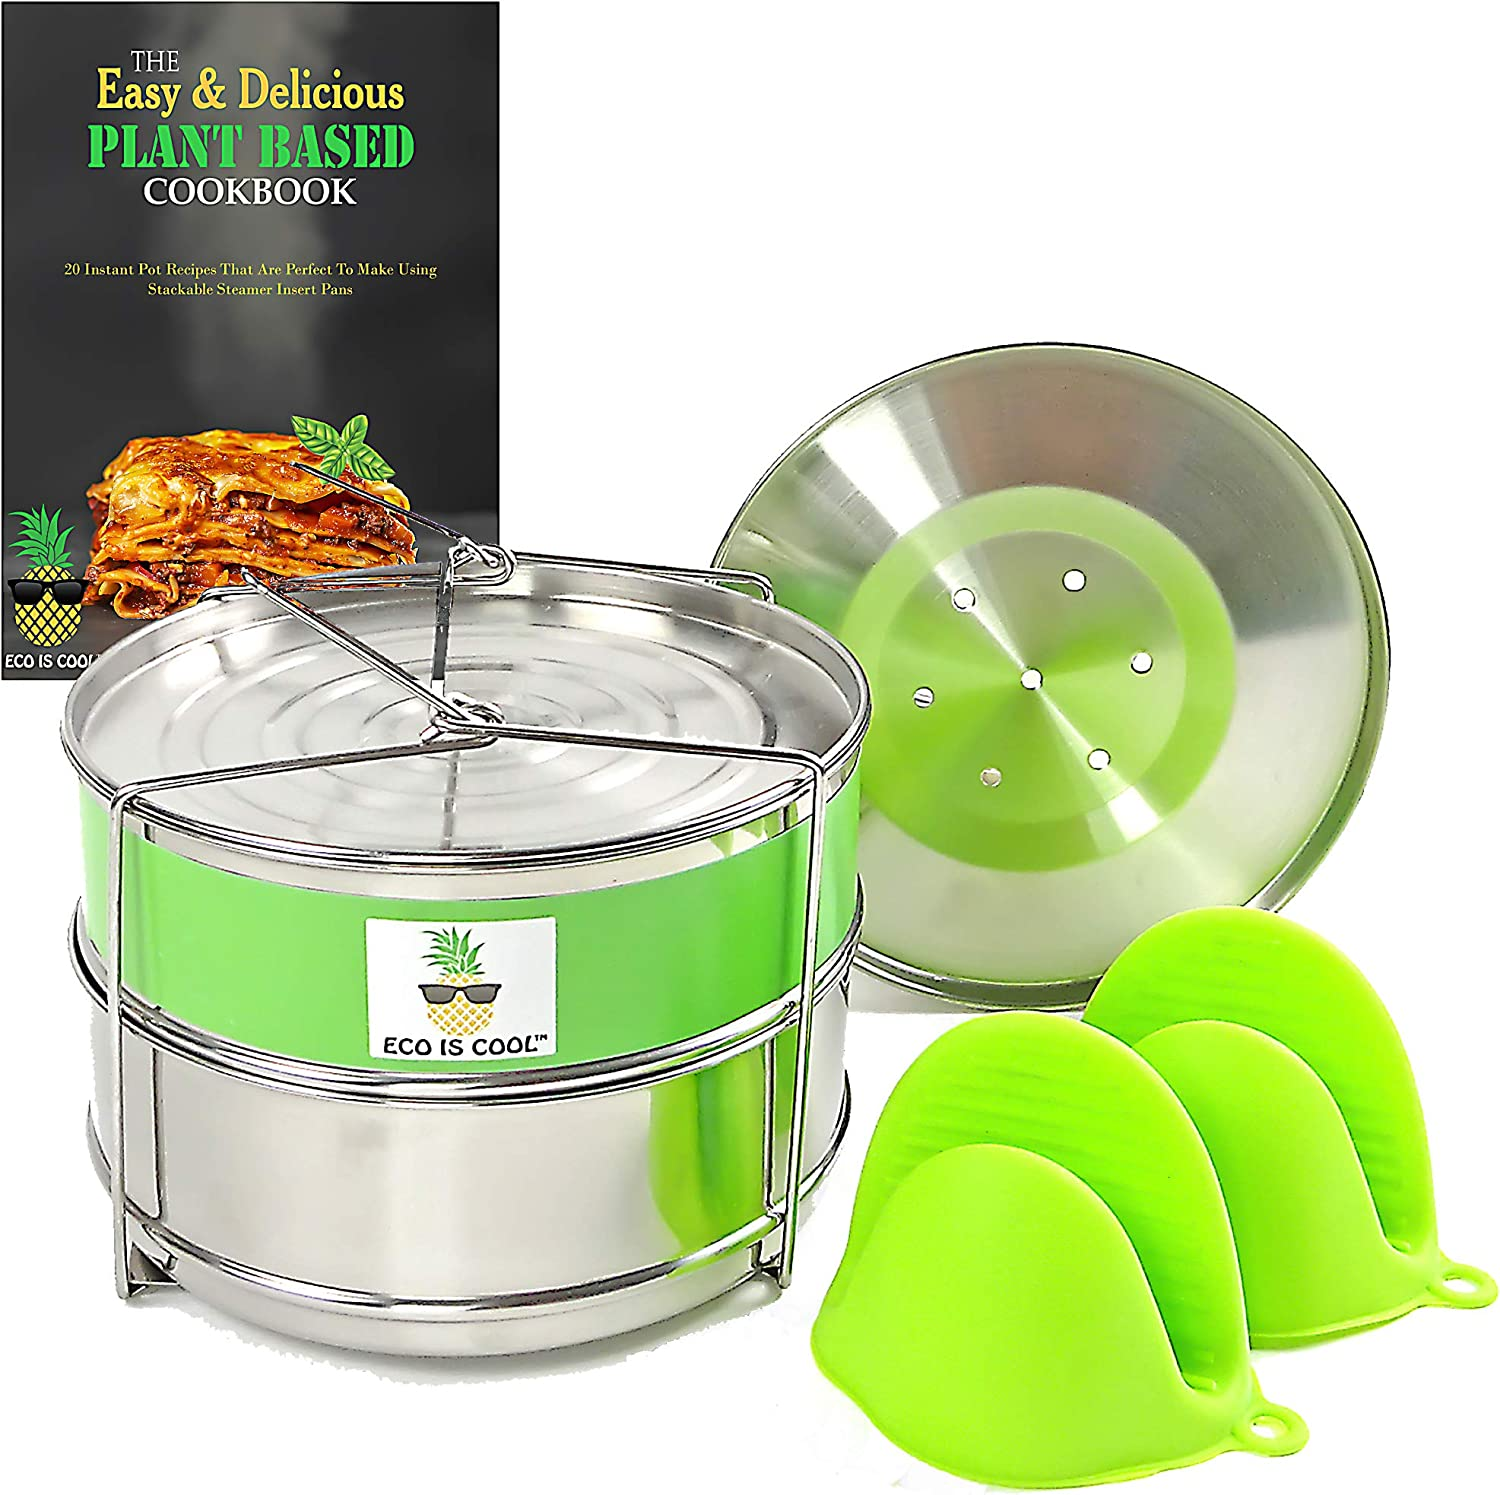 Stackable Steamer Insert Pans with Sling for Instant Pot Accessories 5/6/8 qt - Pot in Pot Cooking, Interchangeable Lids, Silicone Mitts + RECIPE BOOK